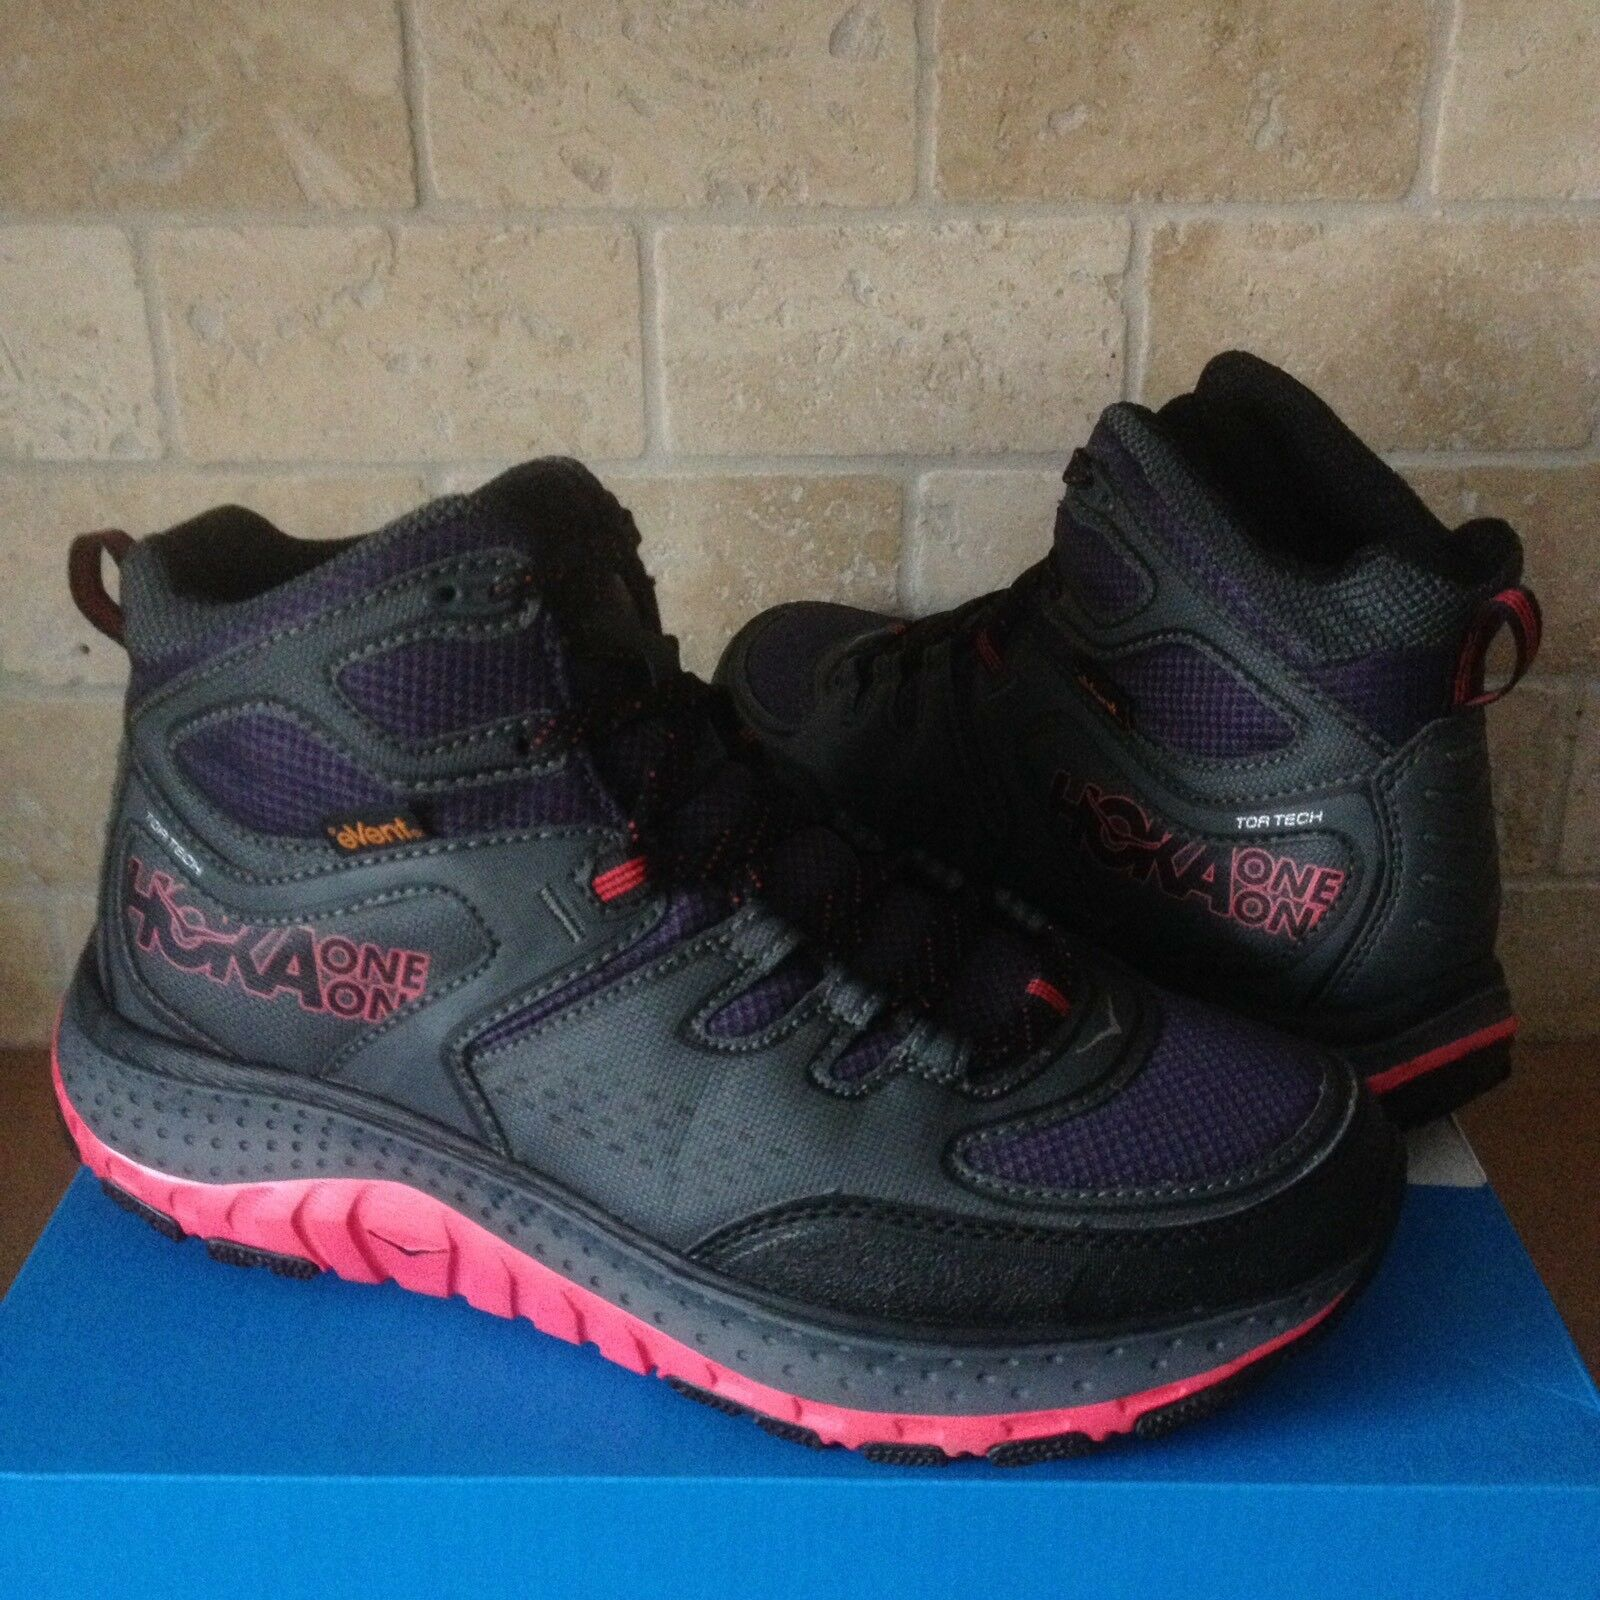 HOKA ONE ONE TOR TECH MID WP TEABERRY TRAIL HIKING  Chaussures  BOOTS SIZE 10.5 femmes